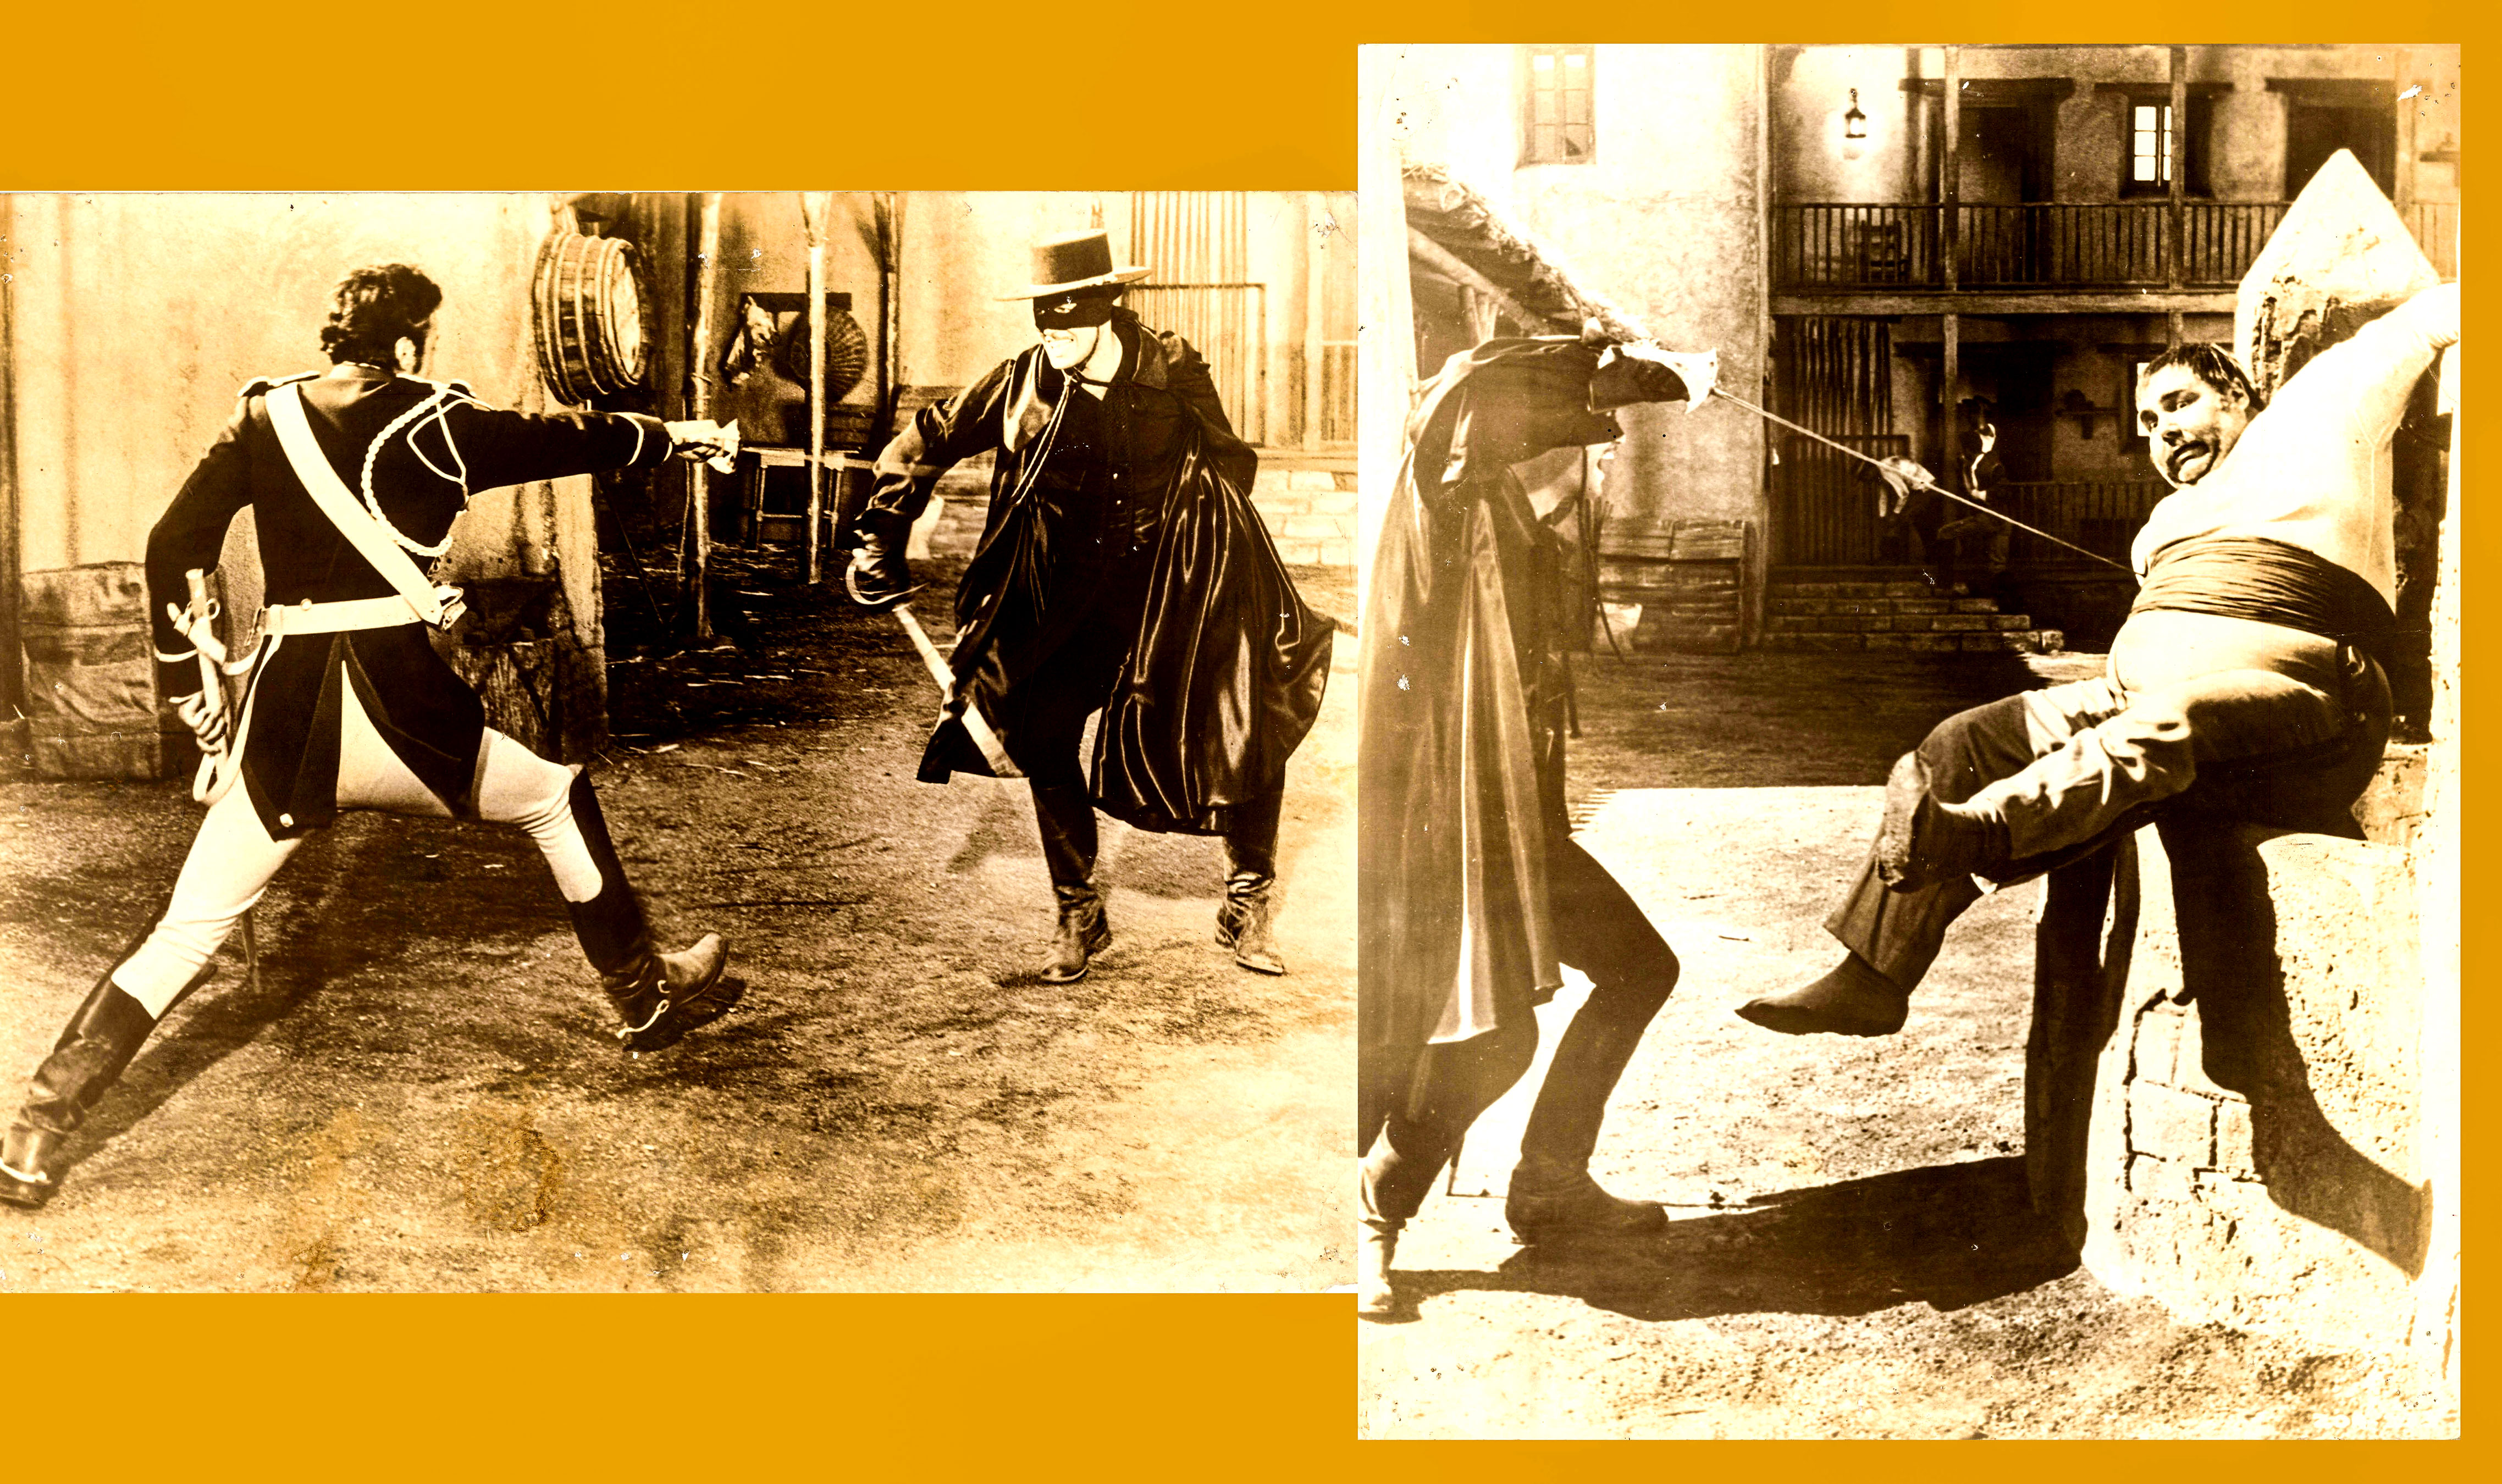 Pictured are two sepia stills from the 1940 Rouben Mamoulian film The Mark of Zorro starring Tyrone Poster as Diego/Zorro.